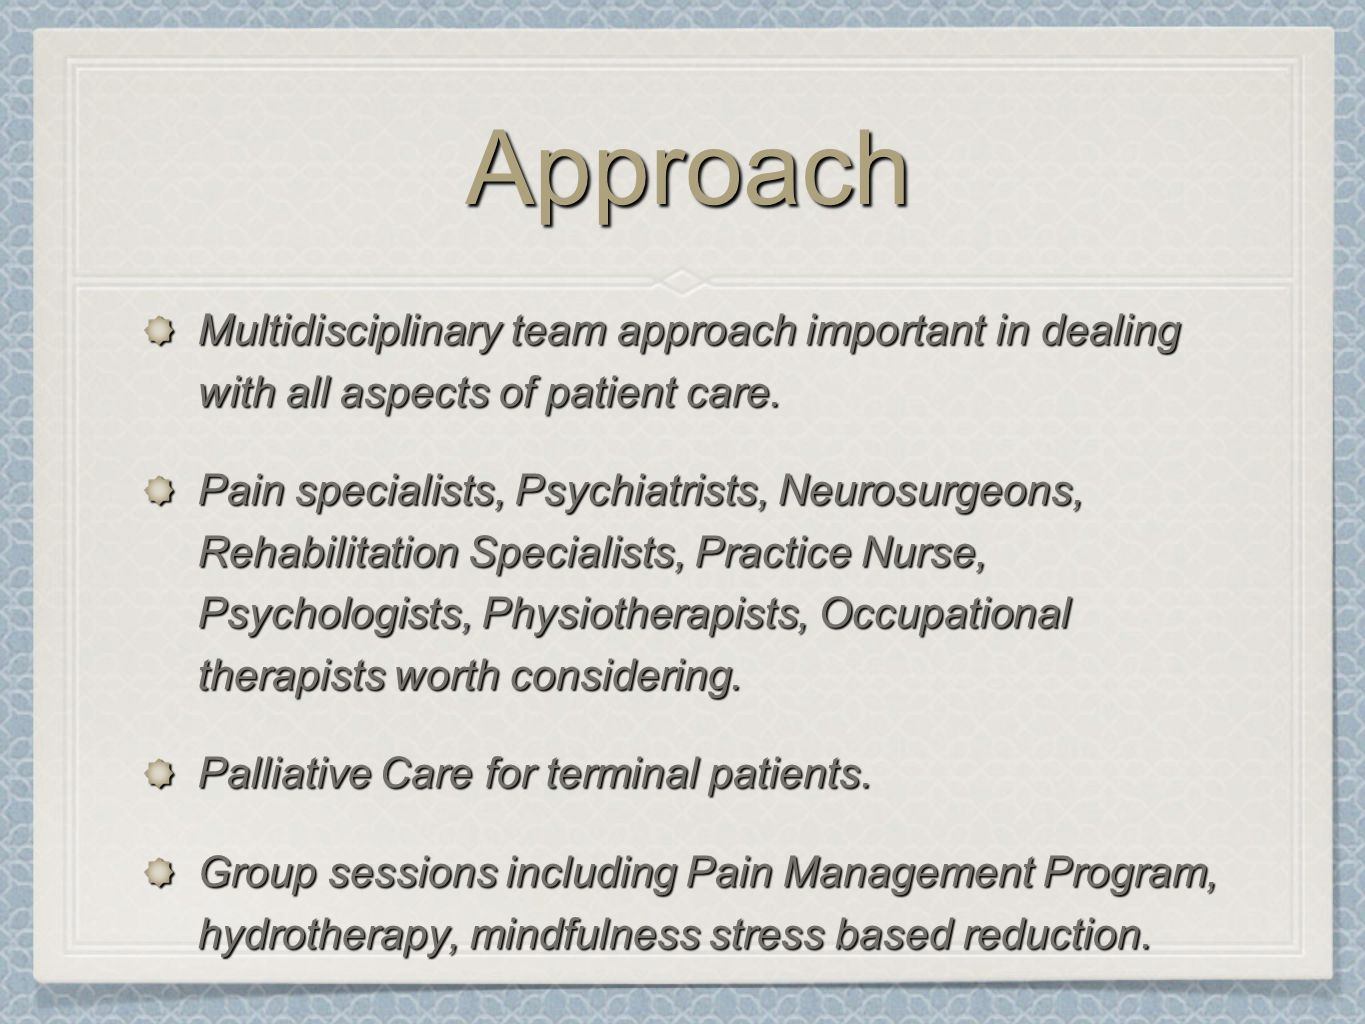 Approach Multidisciplinary team approach important in dealing with all aspects of patient care.